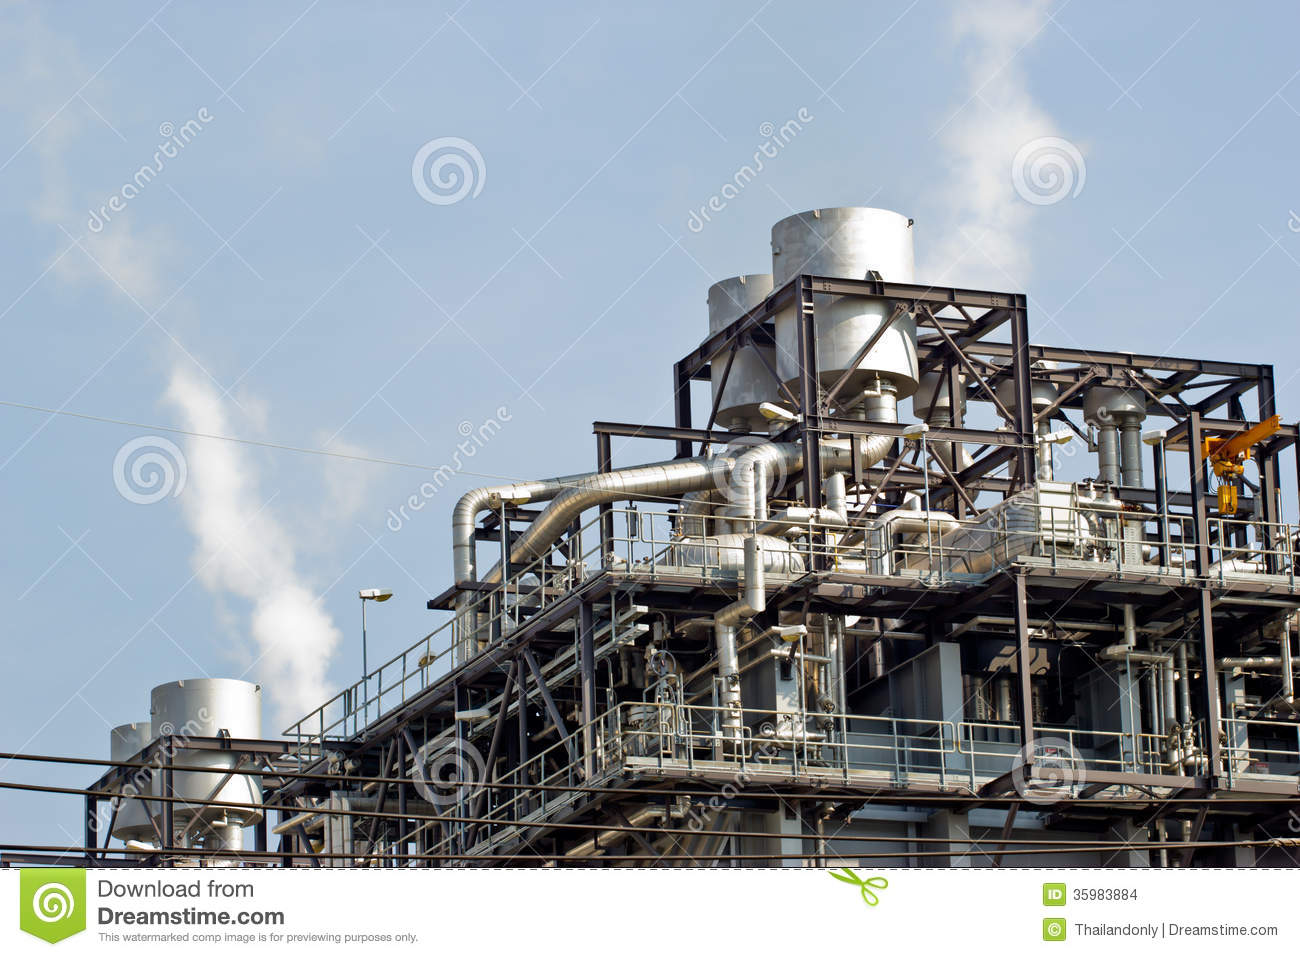 hazard identification in a combined cycle power plant Joselito salmo plant hse supervisor at bazian combined cycle power plant location region iva - calabarzon, philippines industry oil & energy.